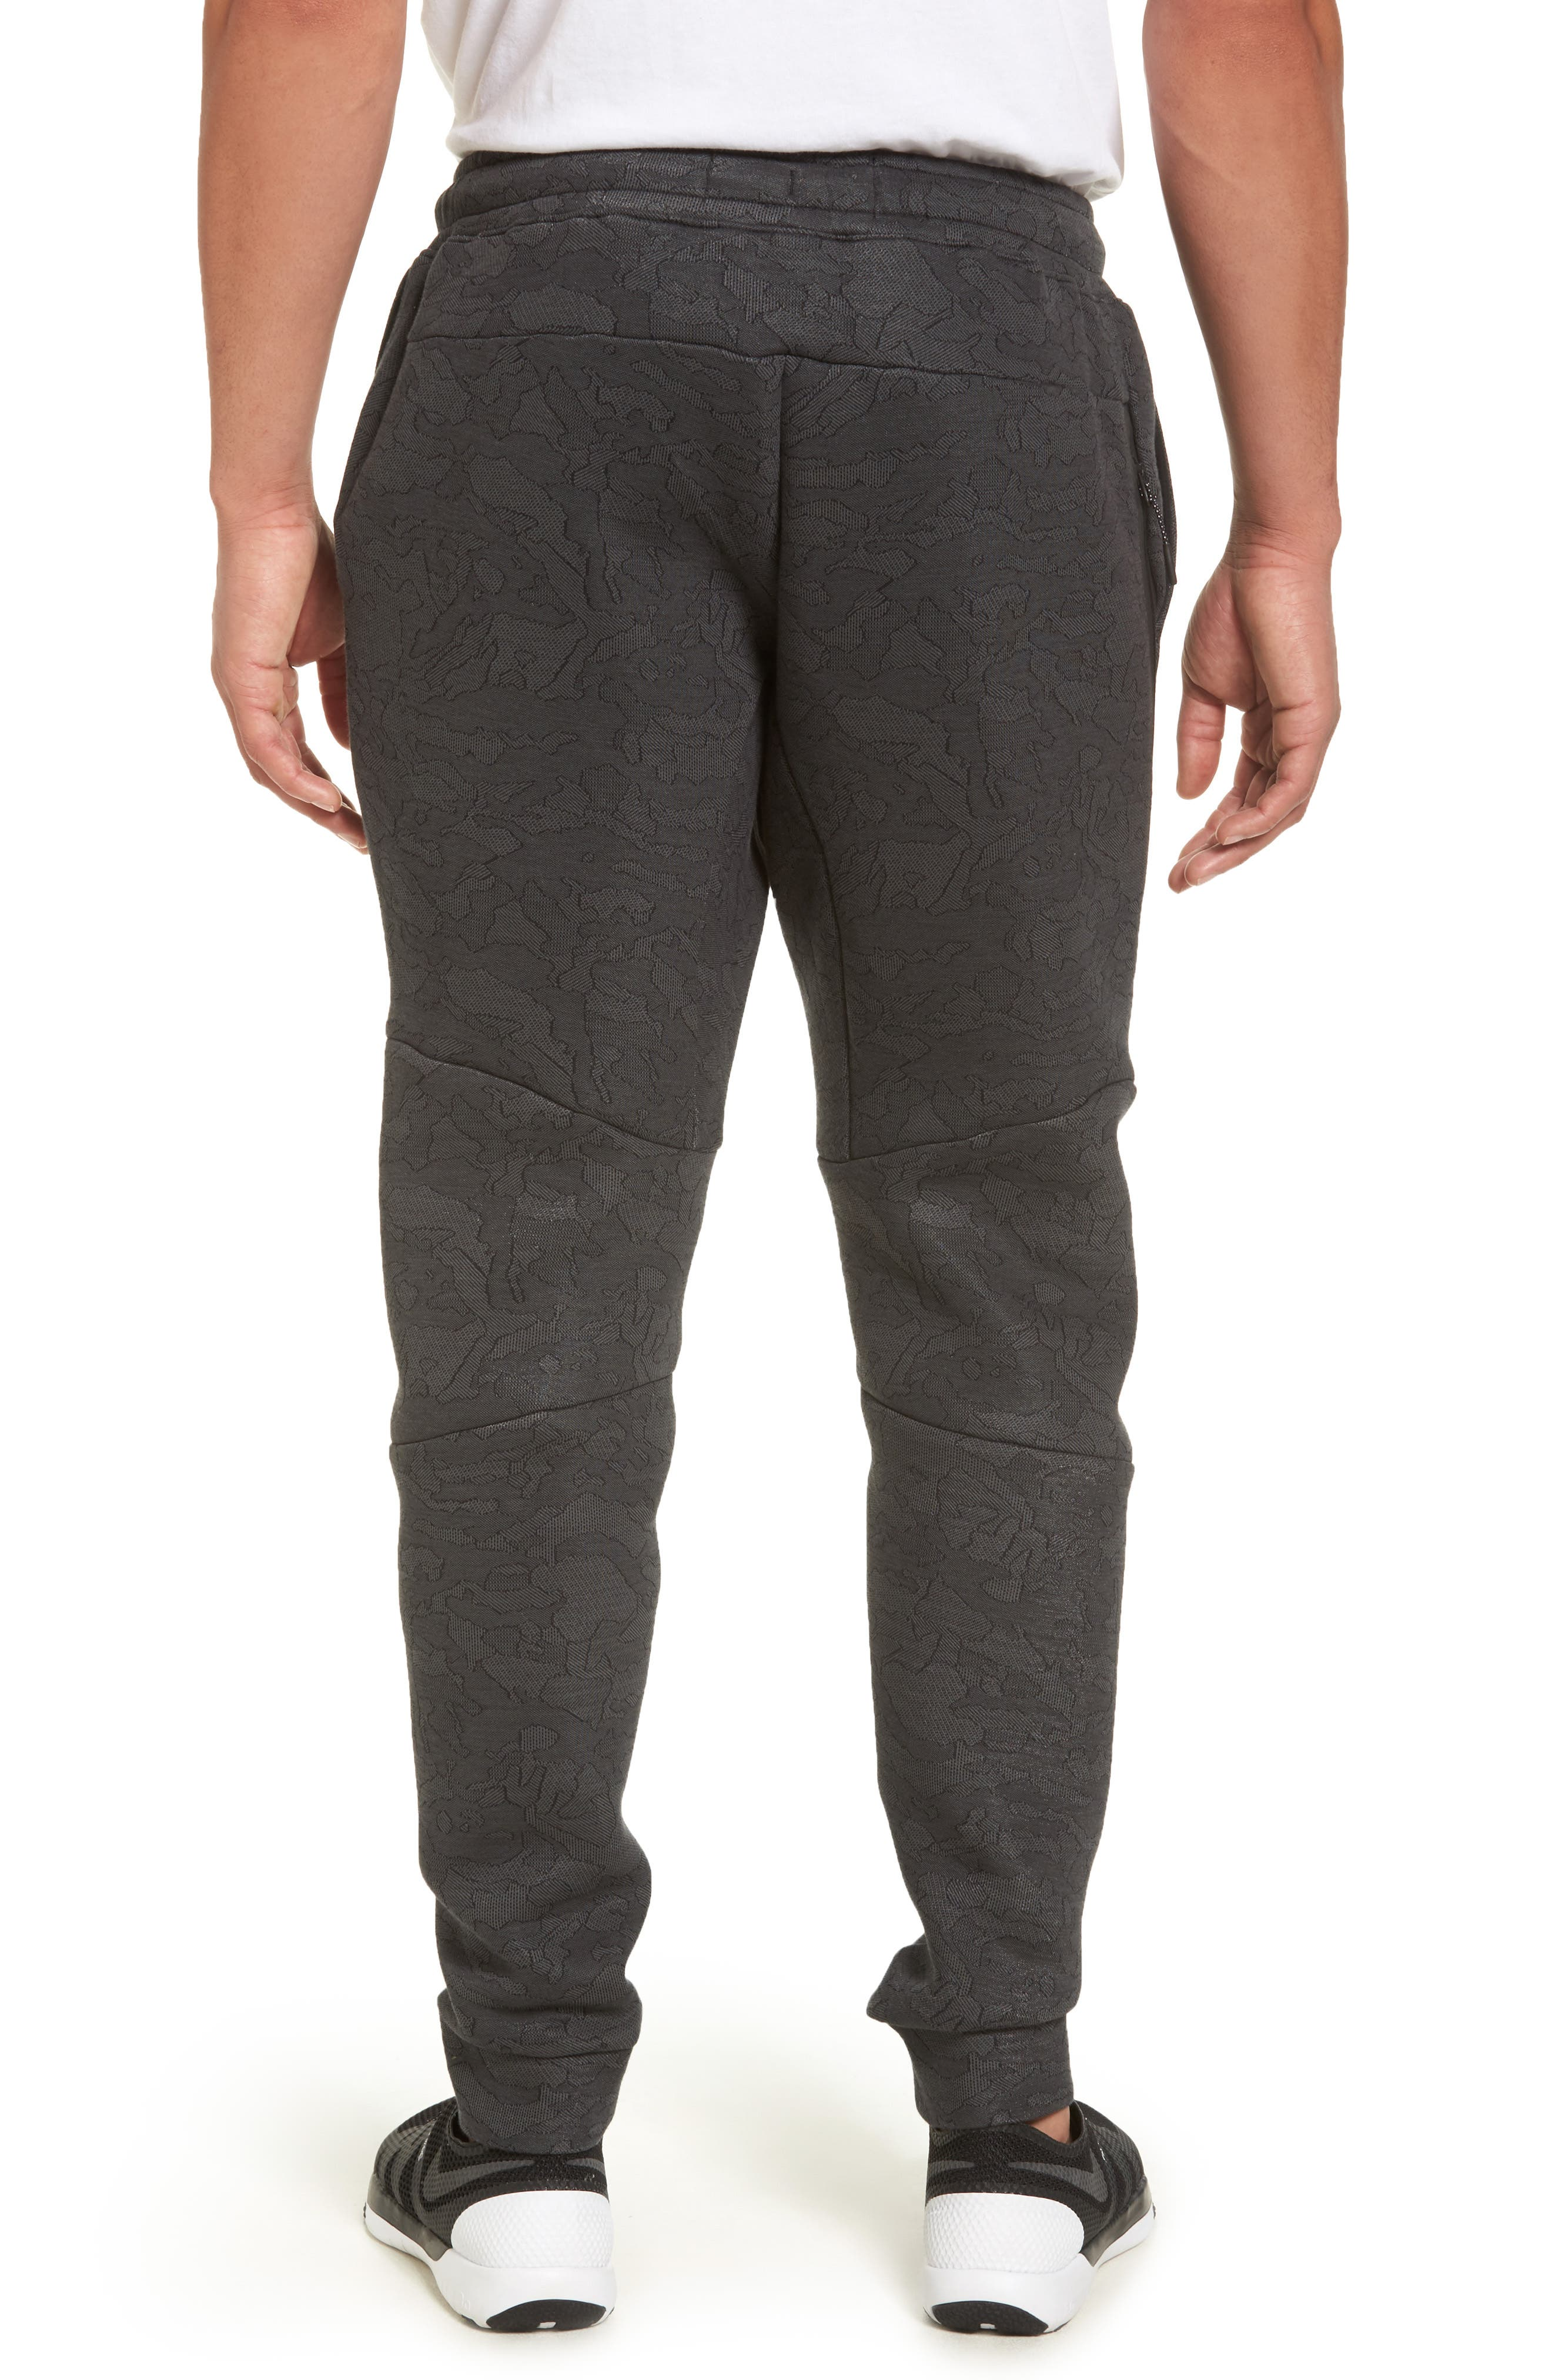 Tech Fleece Pants,                             Alternate thumbnail 2, color,                             Midnight Fog/ Black